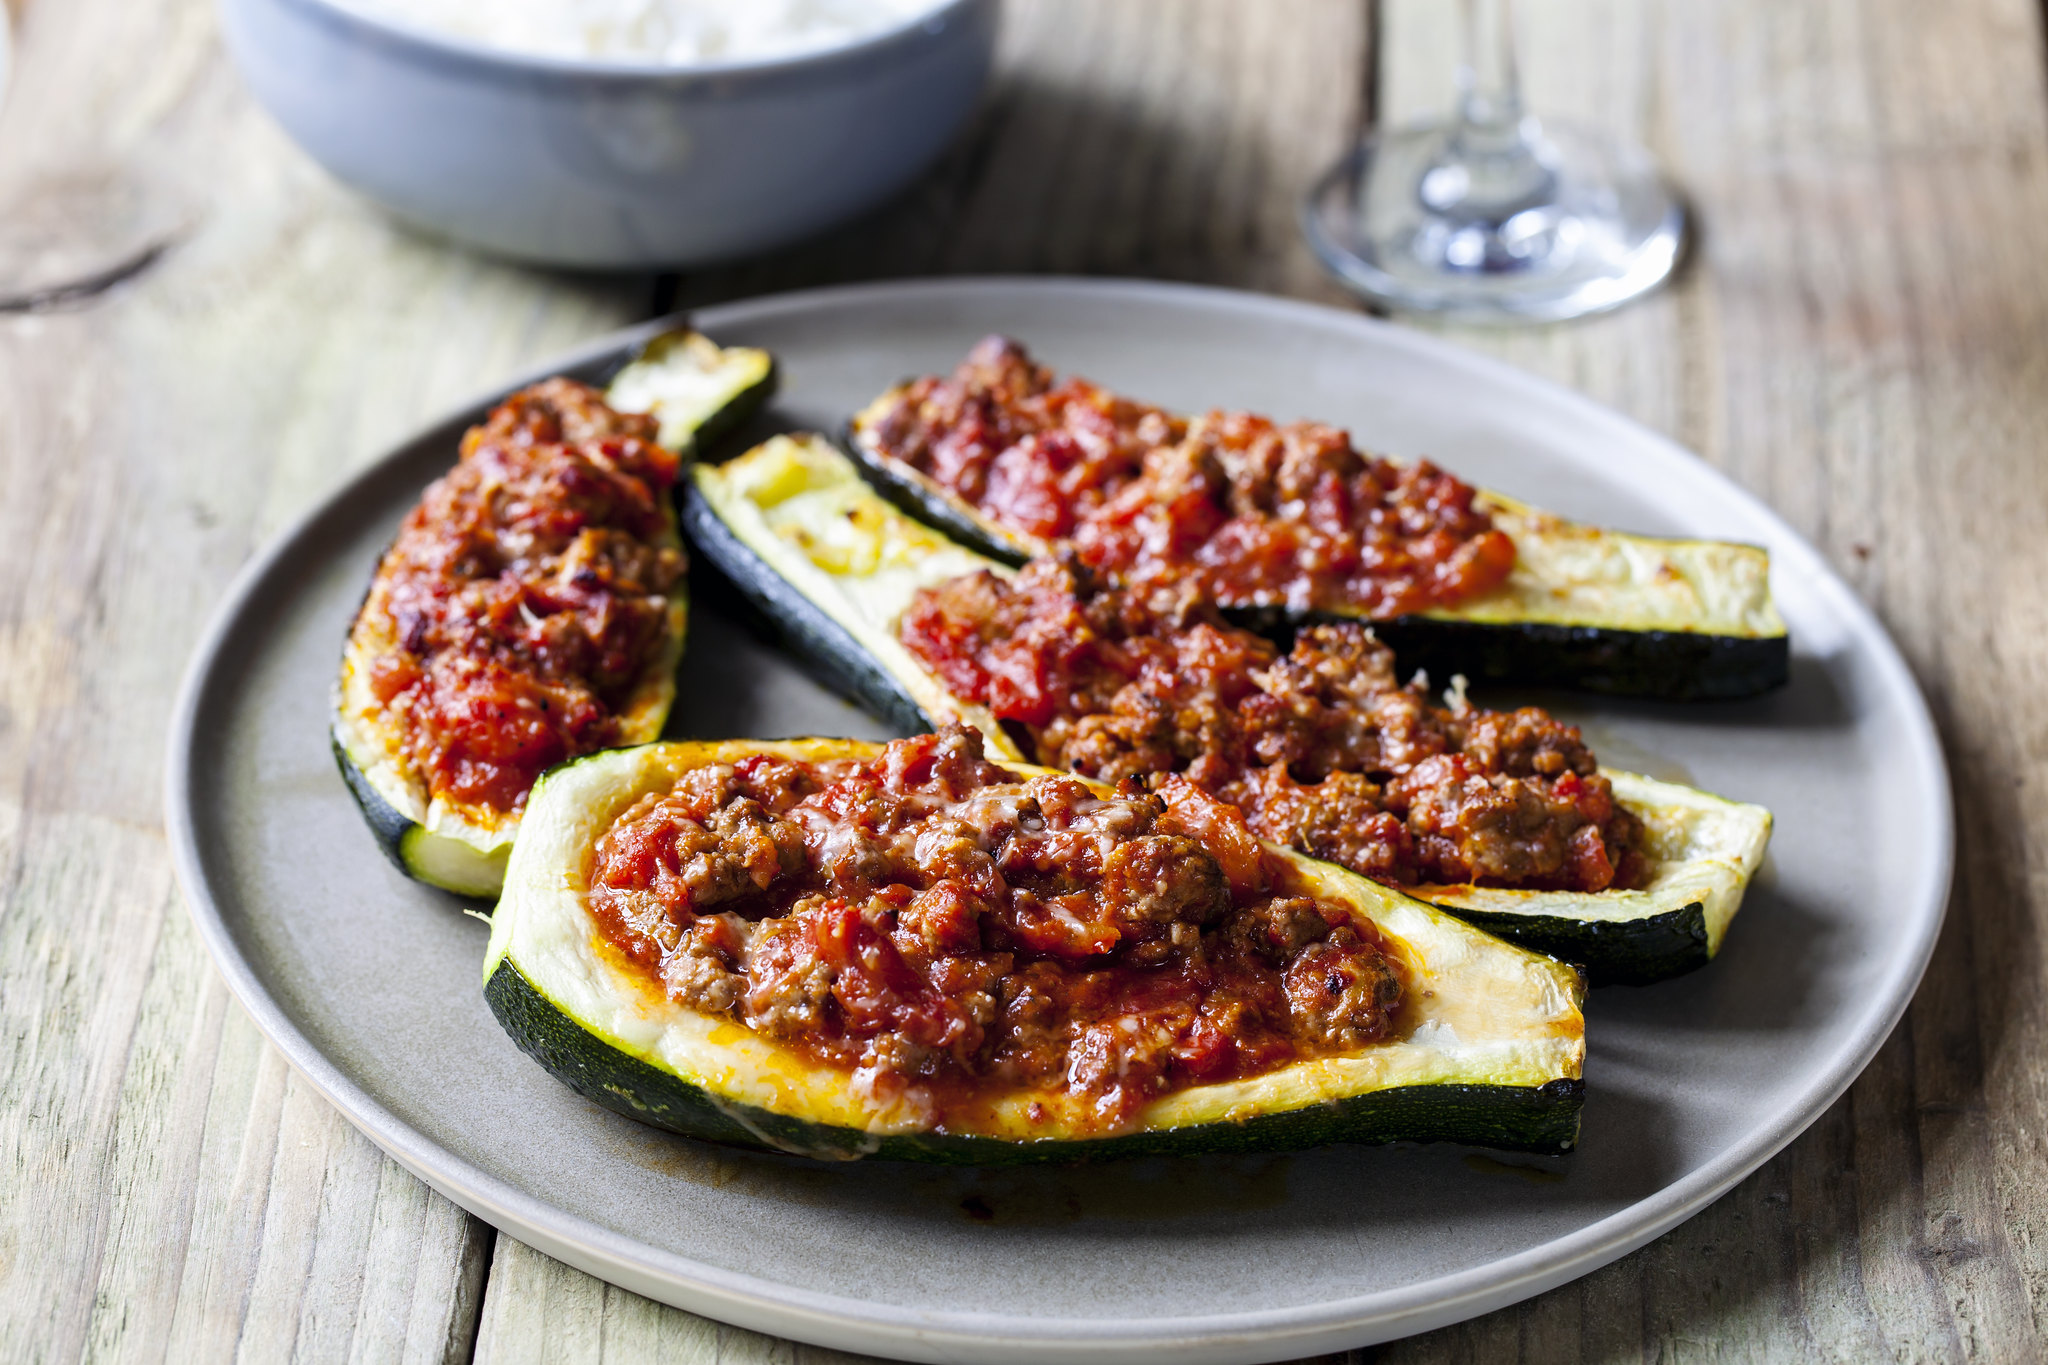 Courgettes with Spicy Lamb Mince